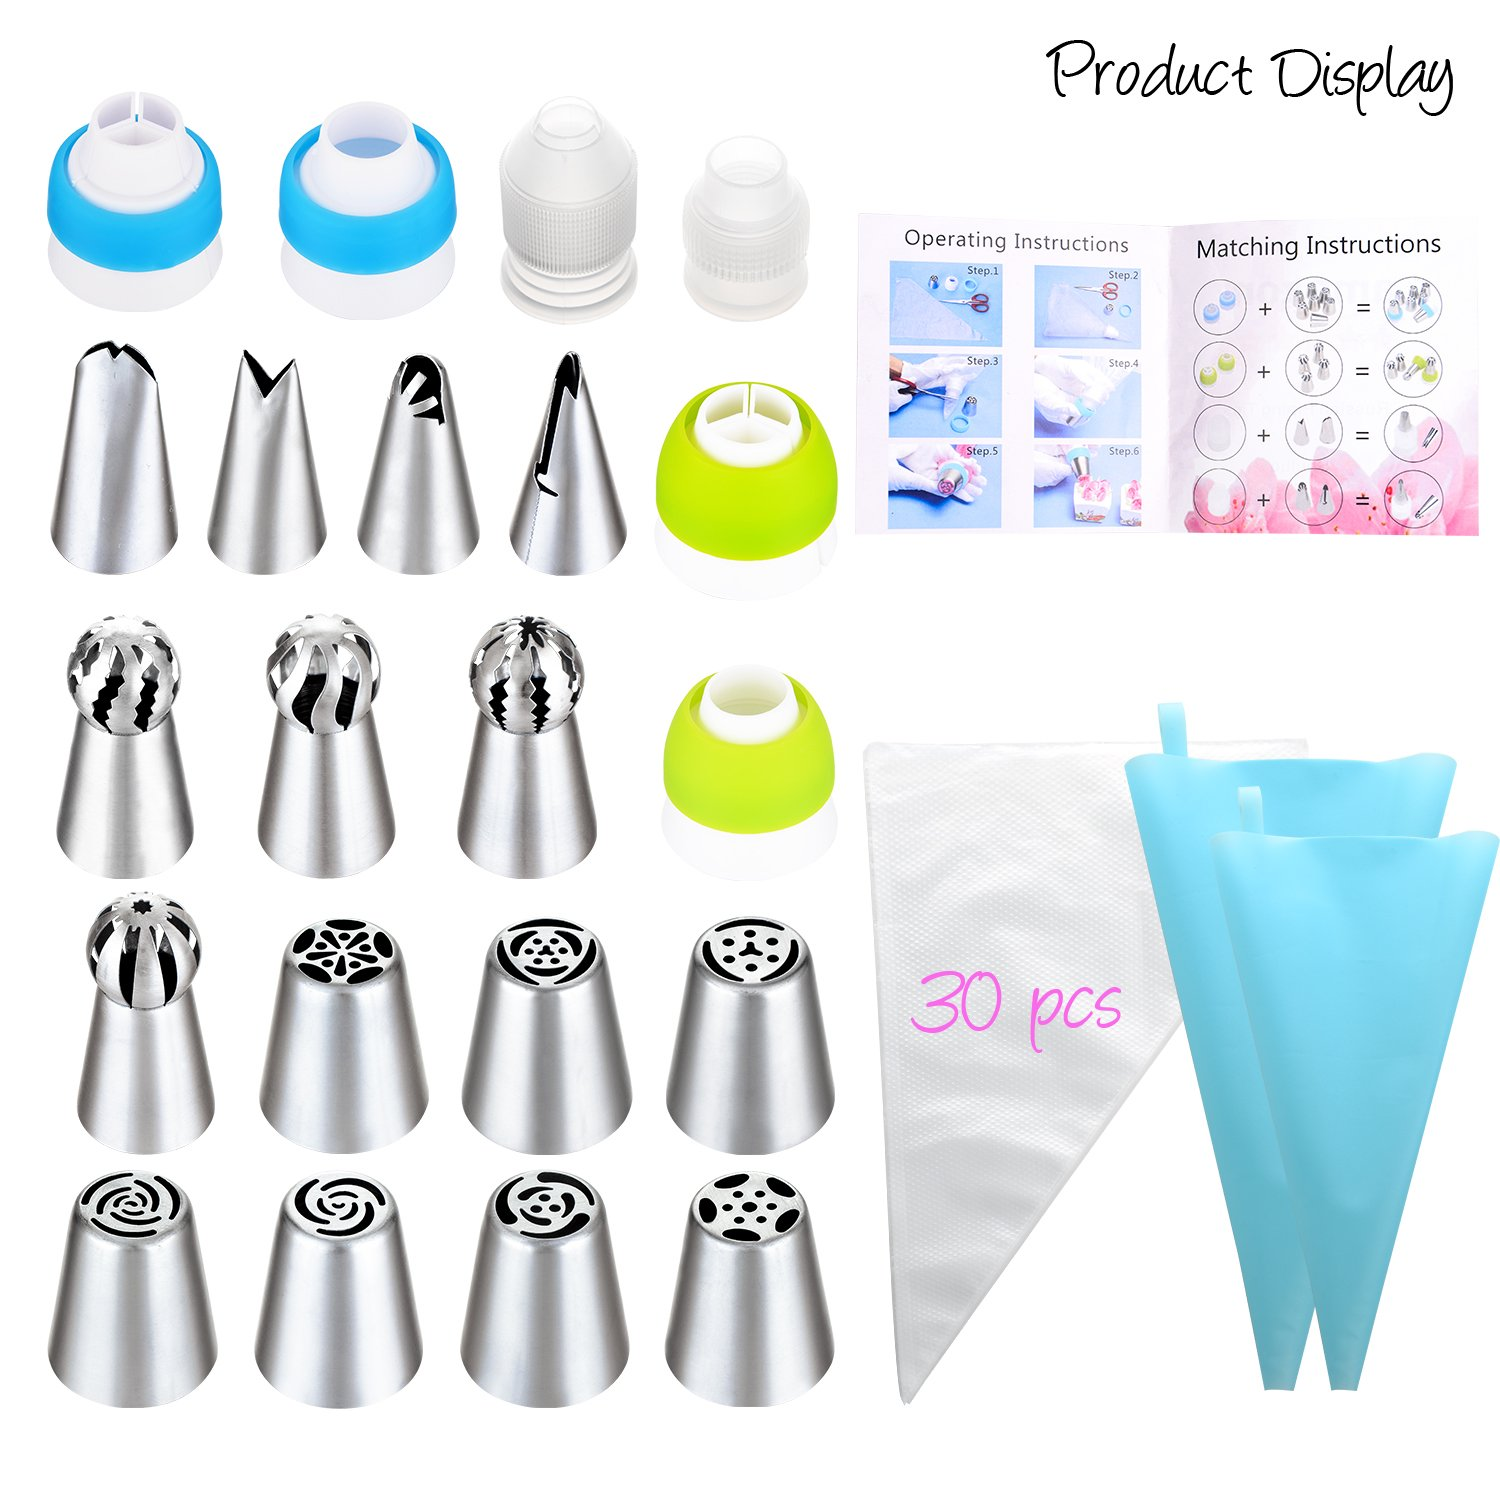 Russian Piping Tips Set - 53 pcs Cake Decorating Tips For cake, Muffins and Ice Cream Decoration Including 15 Unique Design Icing Piping Tips, 4 Couplers, 32 Bags with Gift Box for Mother's Day by Face Forever (Image #2)